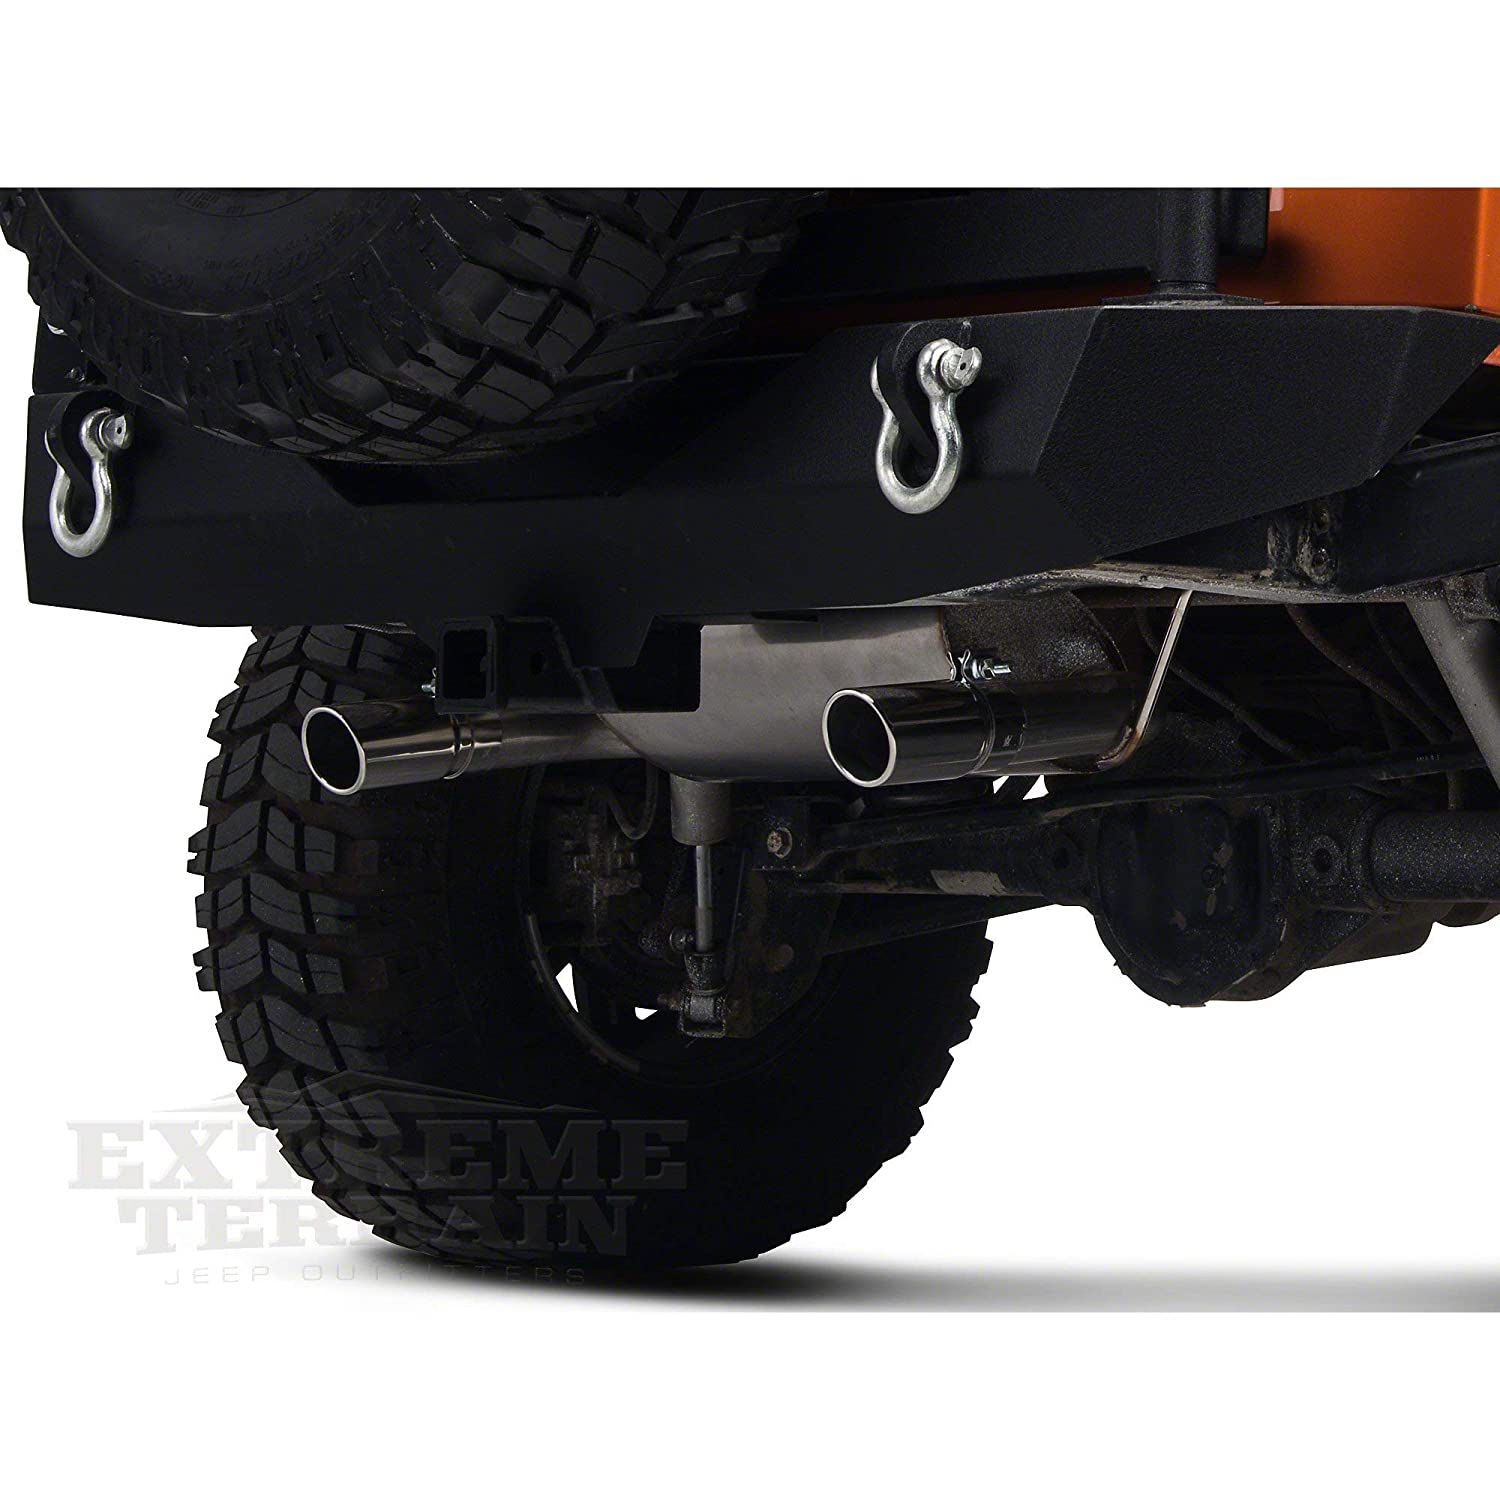 Redrock 4x4 Dual Outlet Axle-Back Exhaust with Black Tips for Jeep Wrangler JK 2007-2018